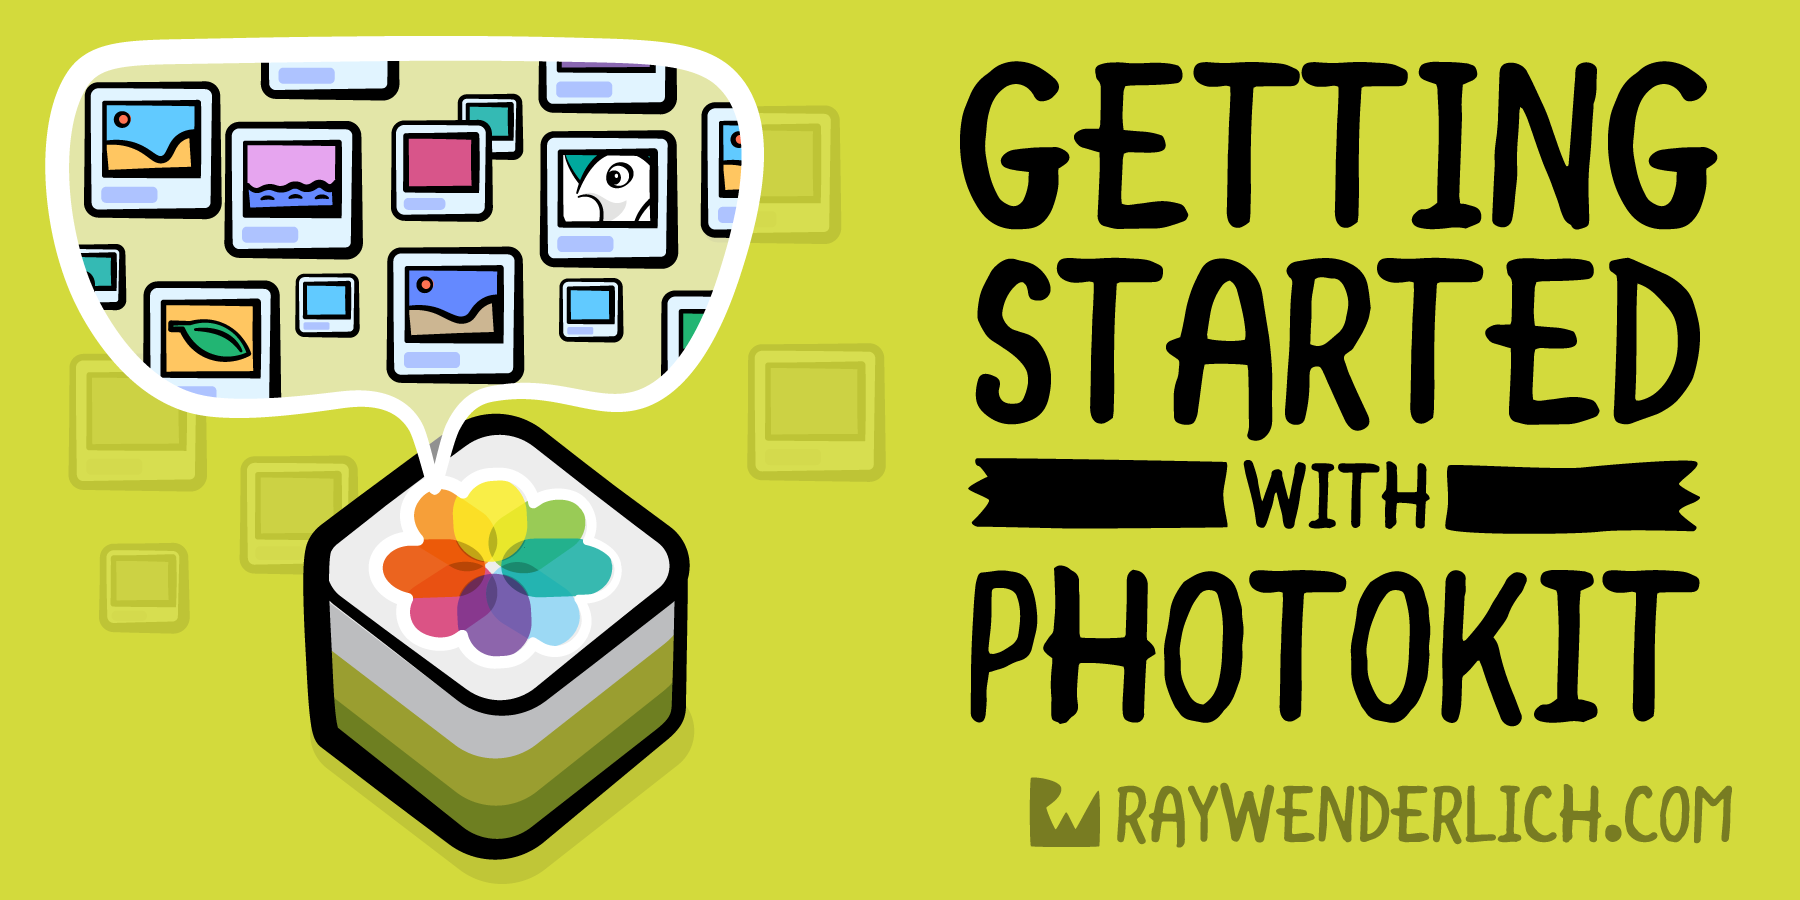 Getting Started with PhotoKit [FREE]